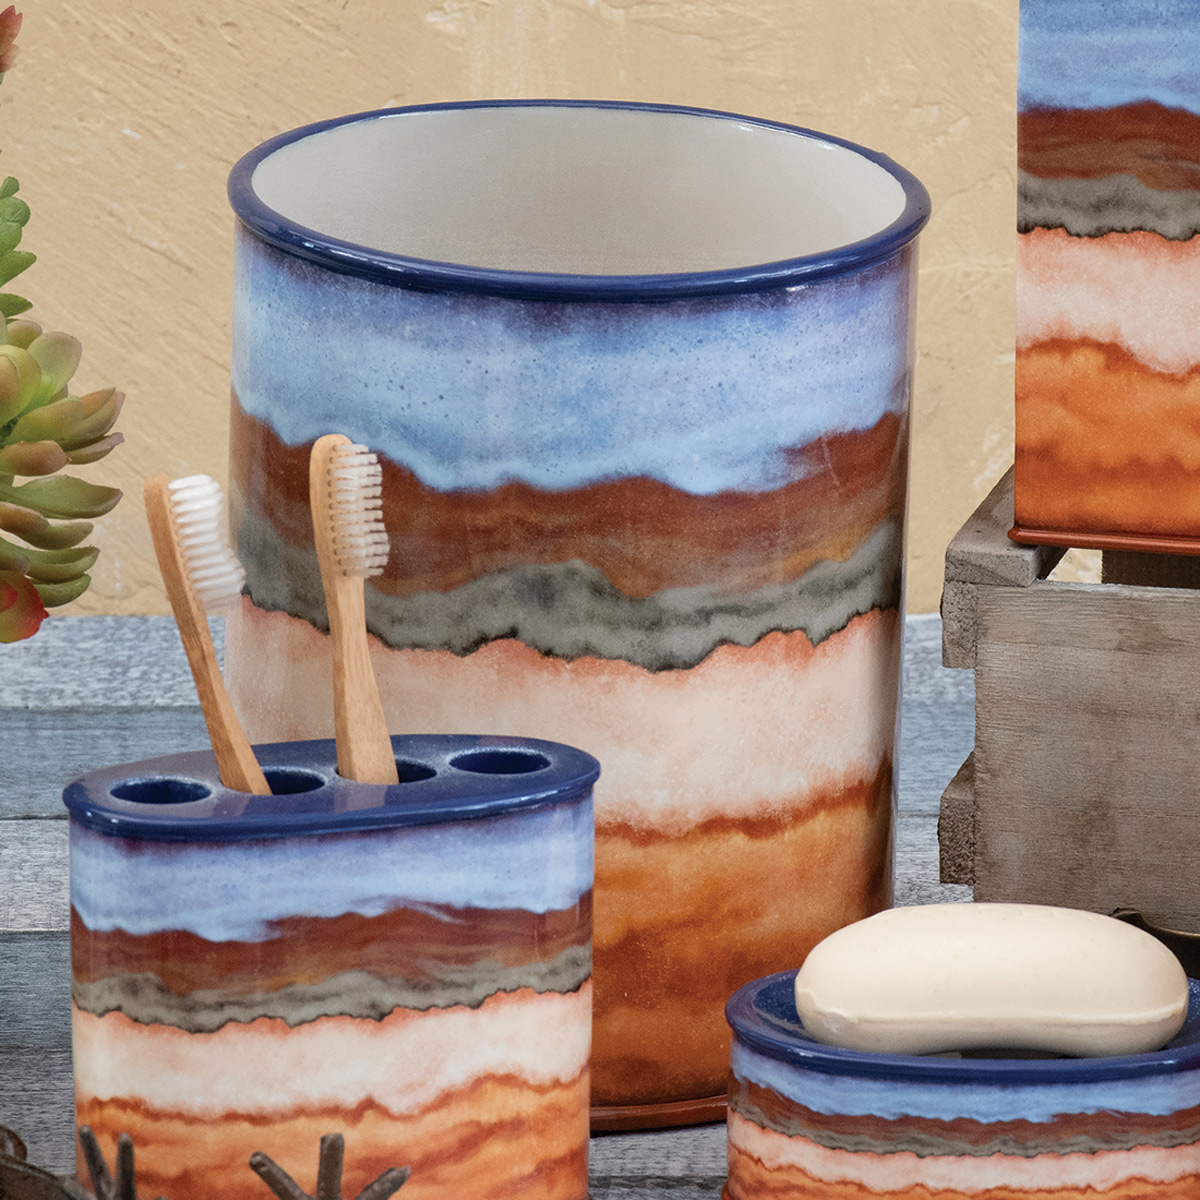 Mojave Vista Waste Basket